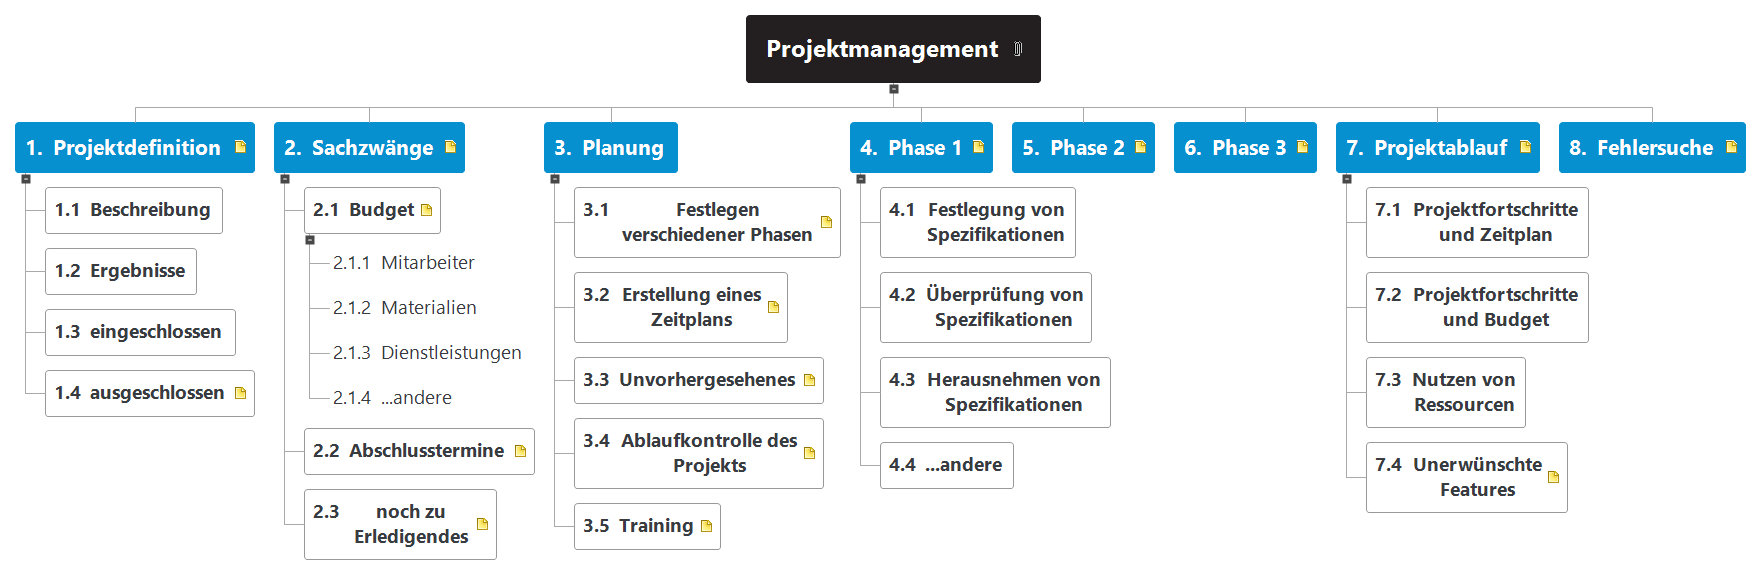 Projektmanagement PSP